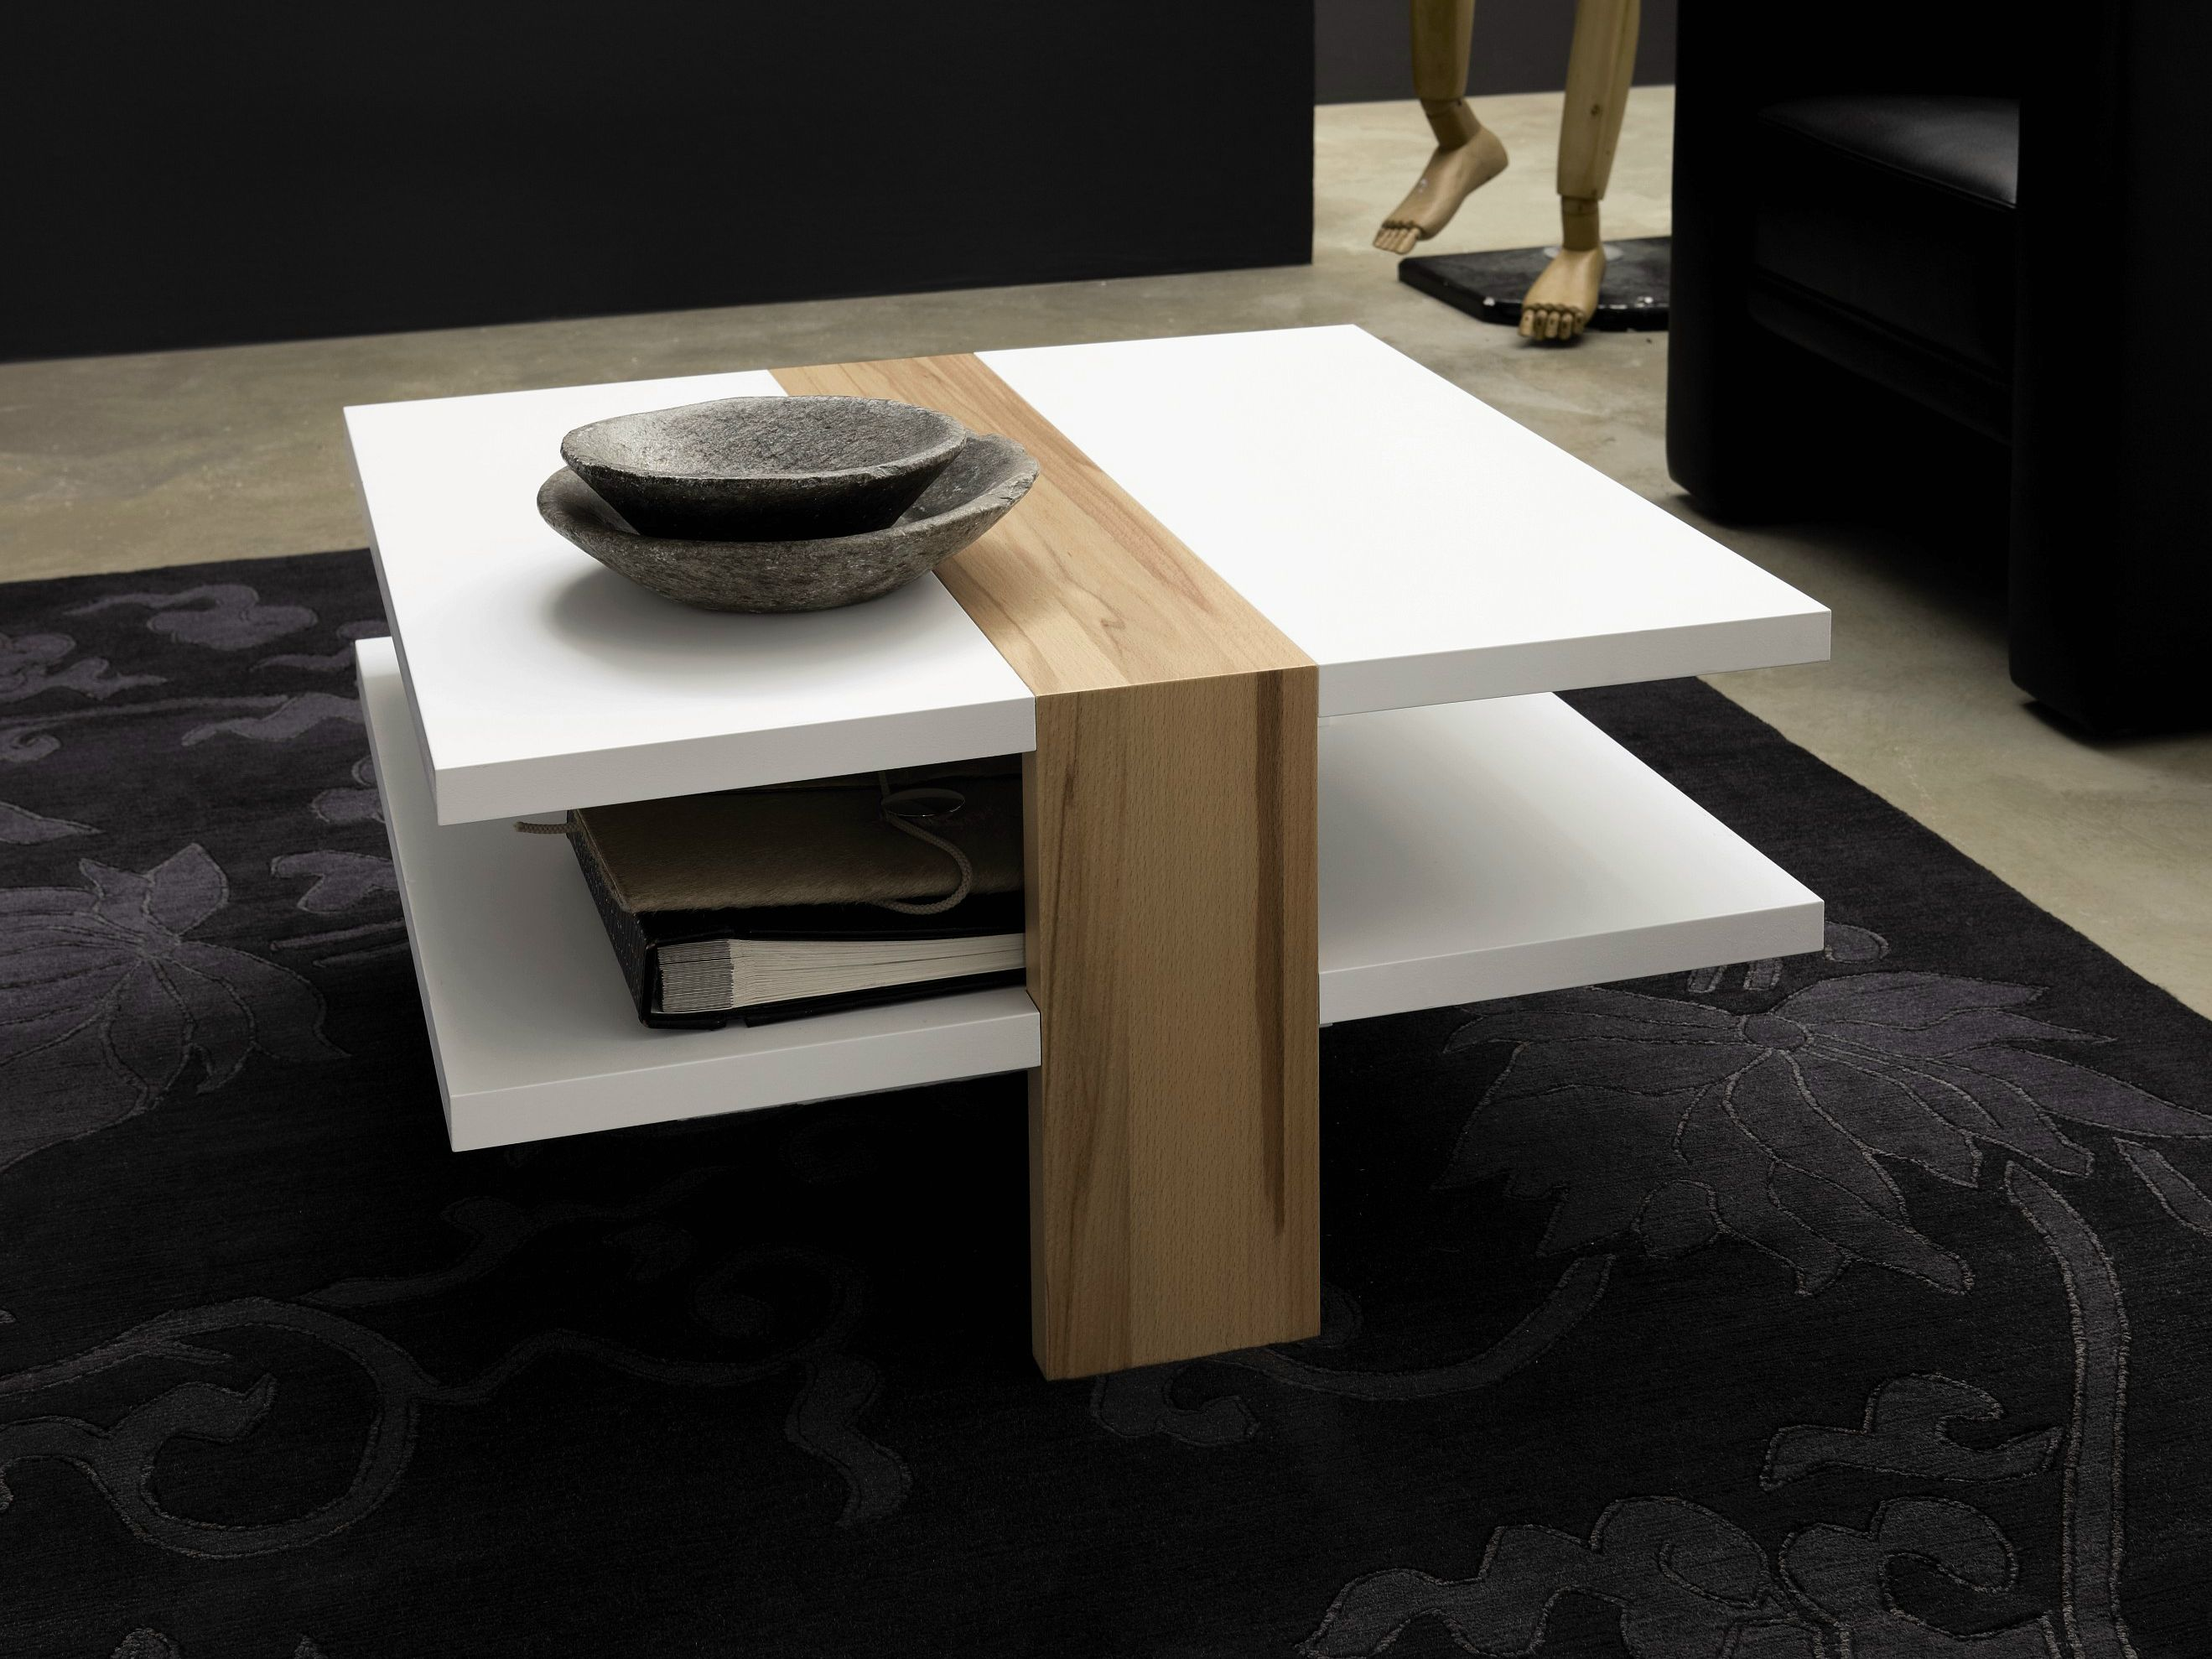 sch n couchtisch buche quadratisch couchtisch pinterest couchtisch buche couchtische und. Black Bedroom Furniture Sets. Home Design Ideas